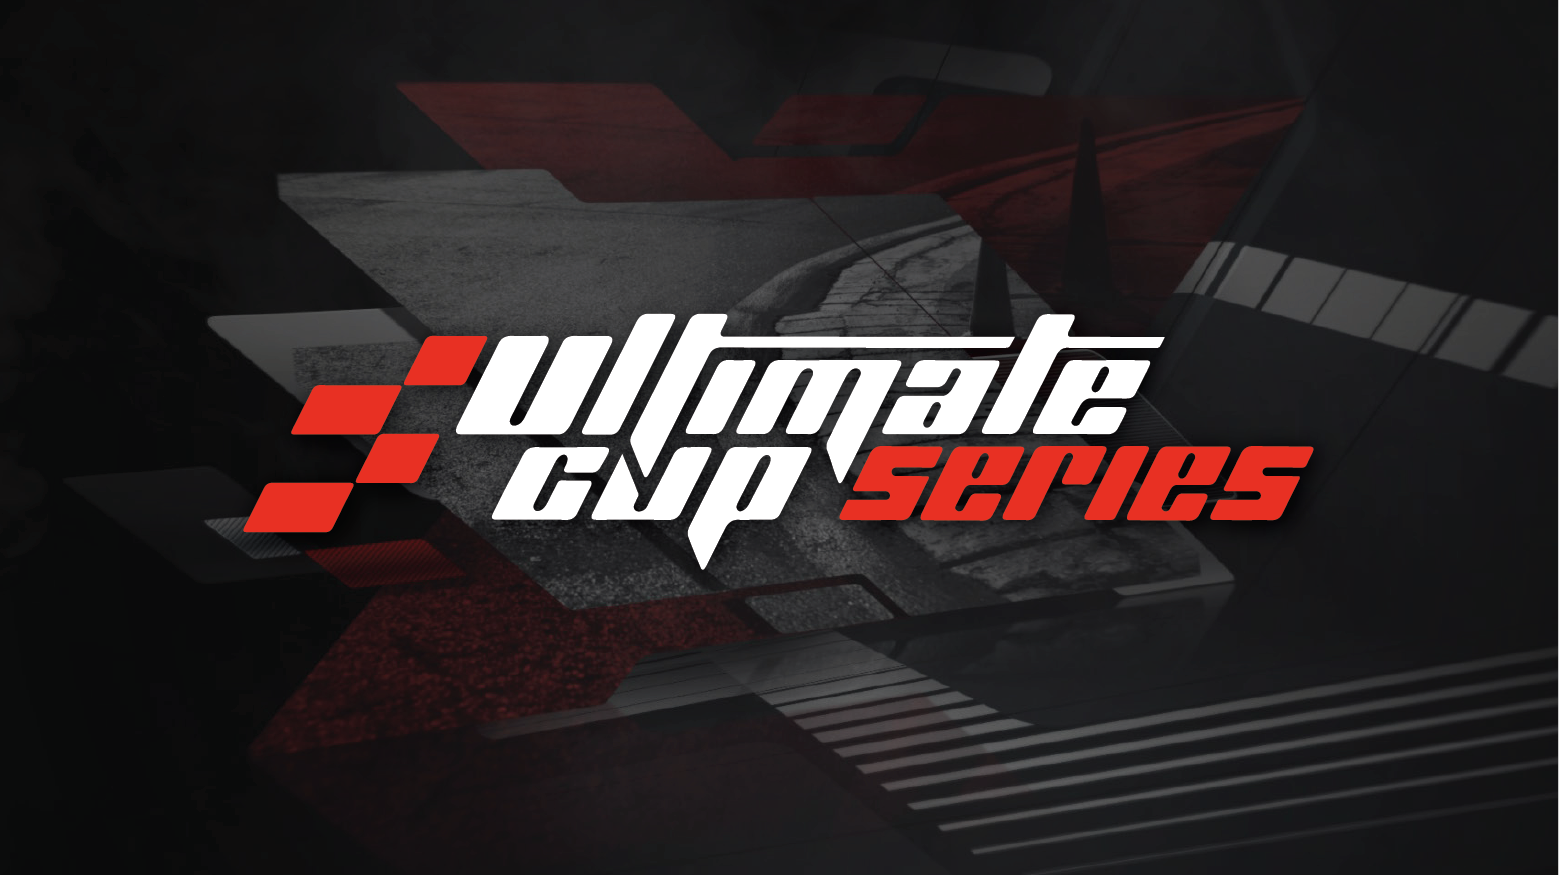 000000 888 MARKETING LOGO ultimate_serie